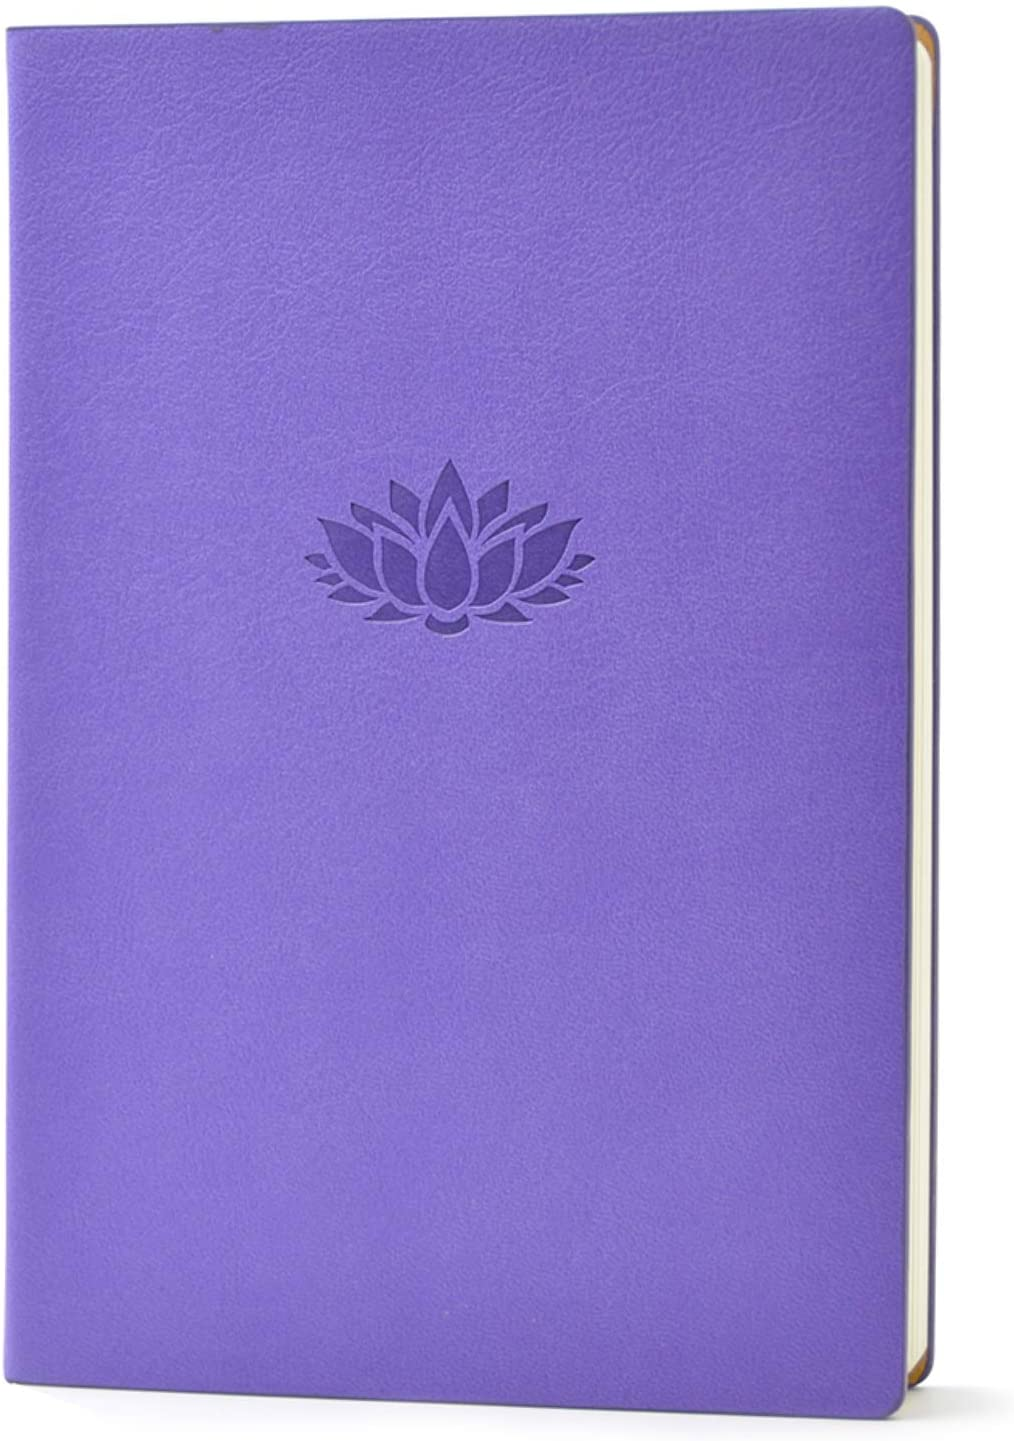 Evolway Fitness Journal and Planner, Diet and Workout Log, Gray Panther/Yellow Flash/Purple Lotus Design, Leather Cover, Sturdy Binding, Thick Pages & Laminated